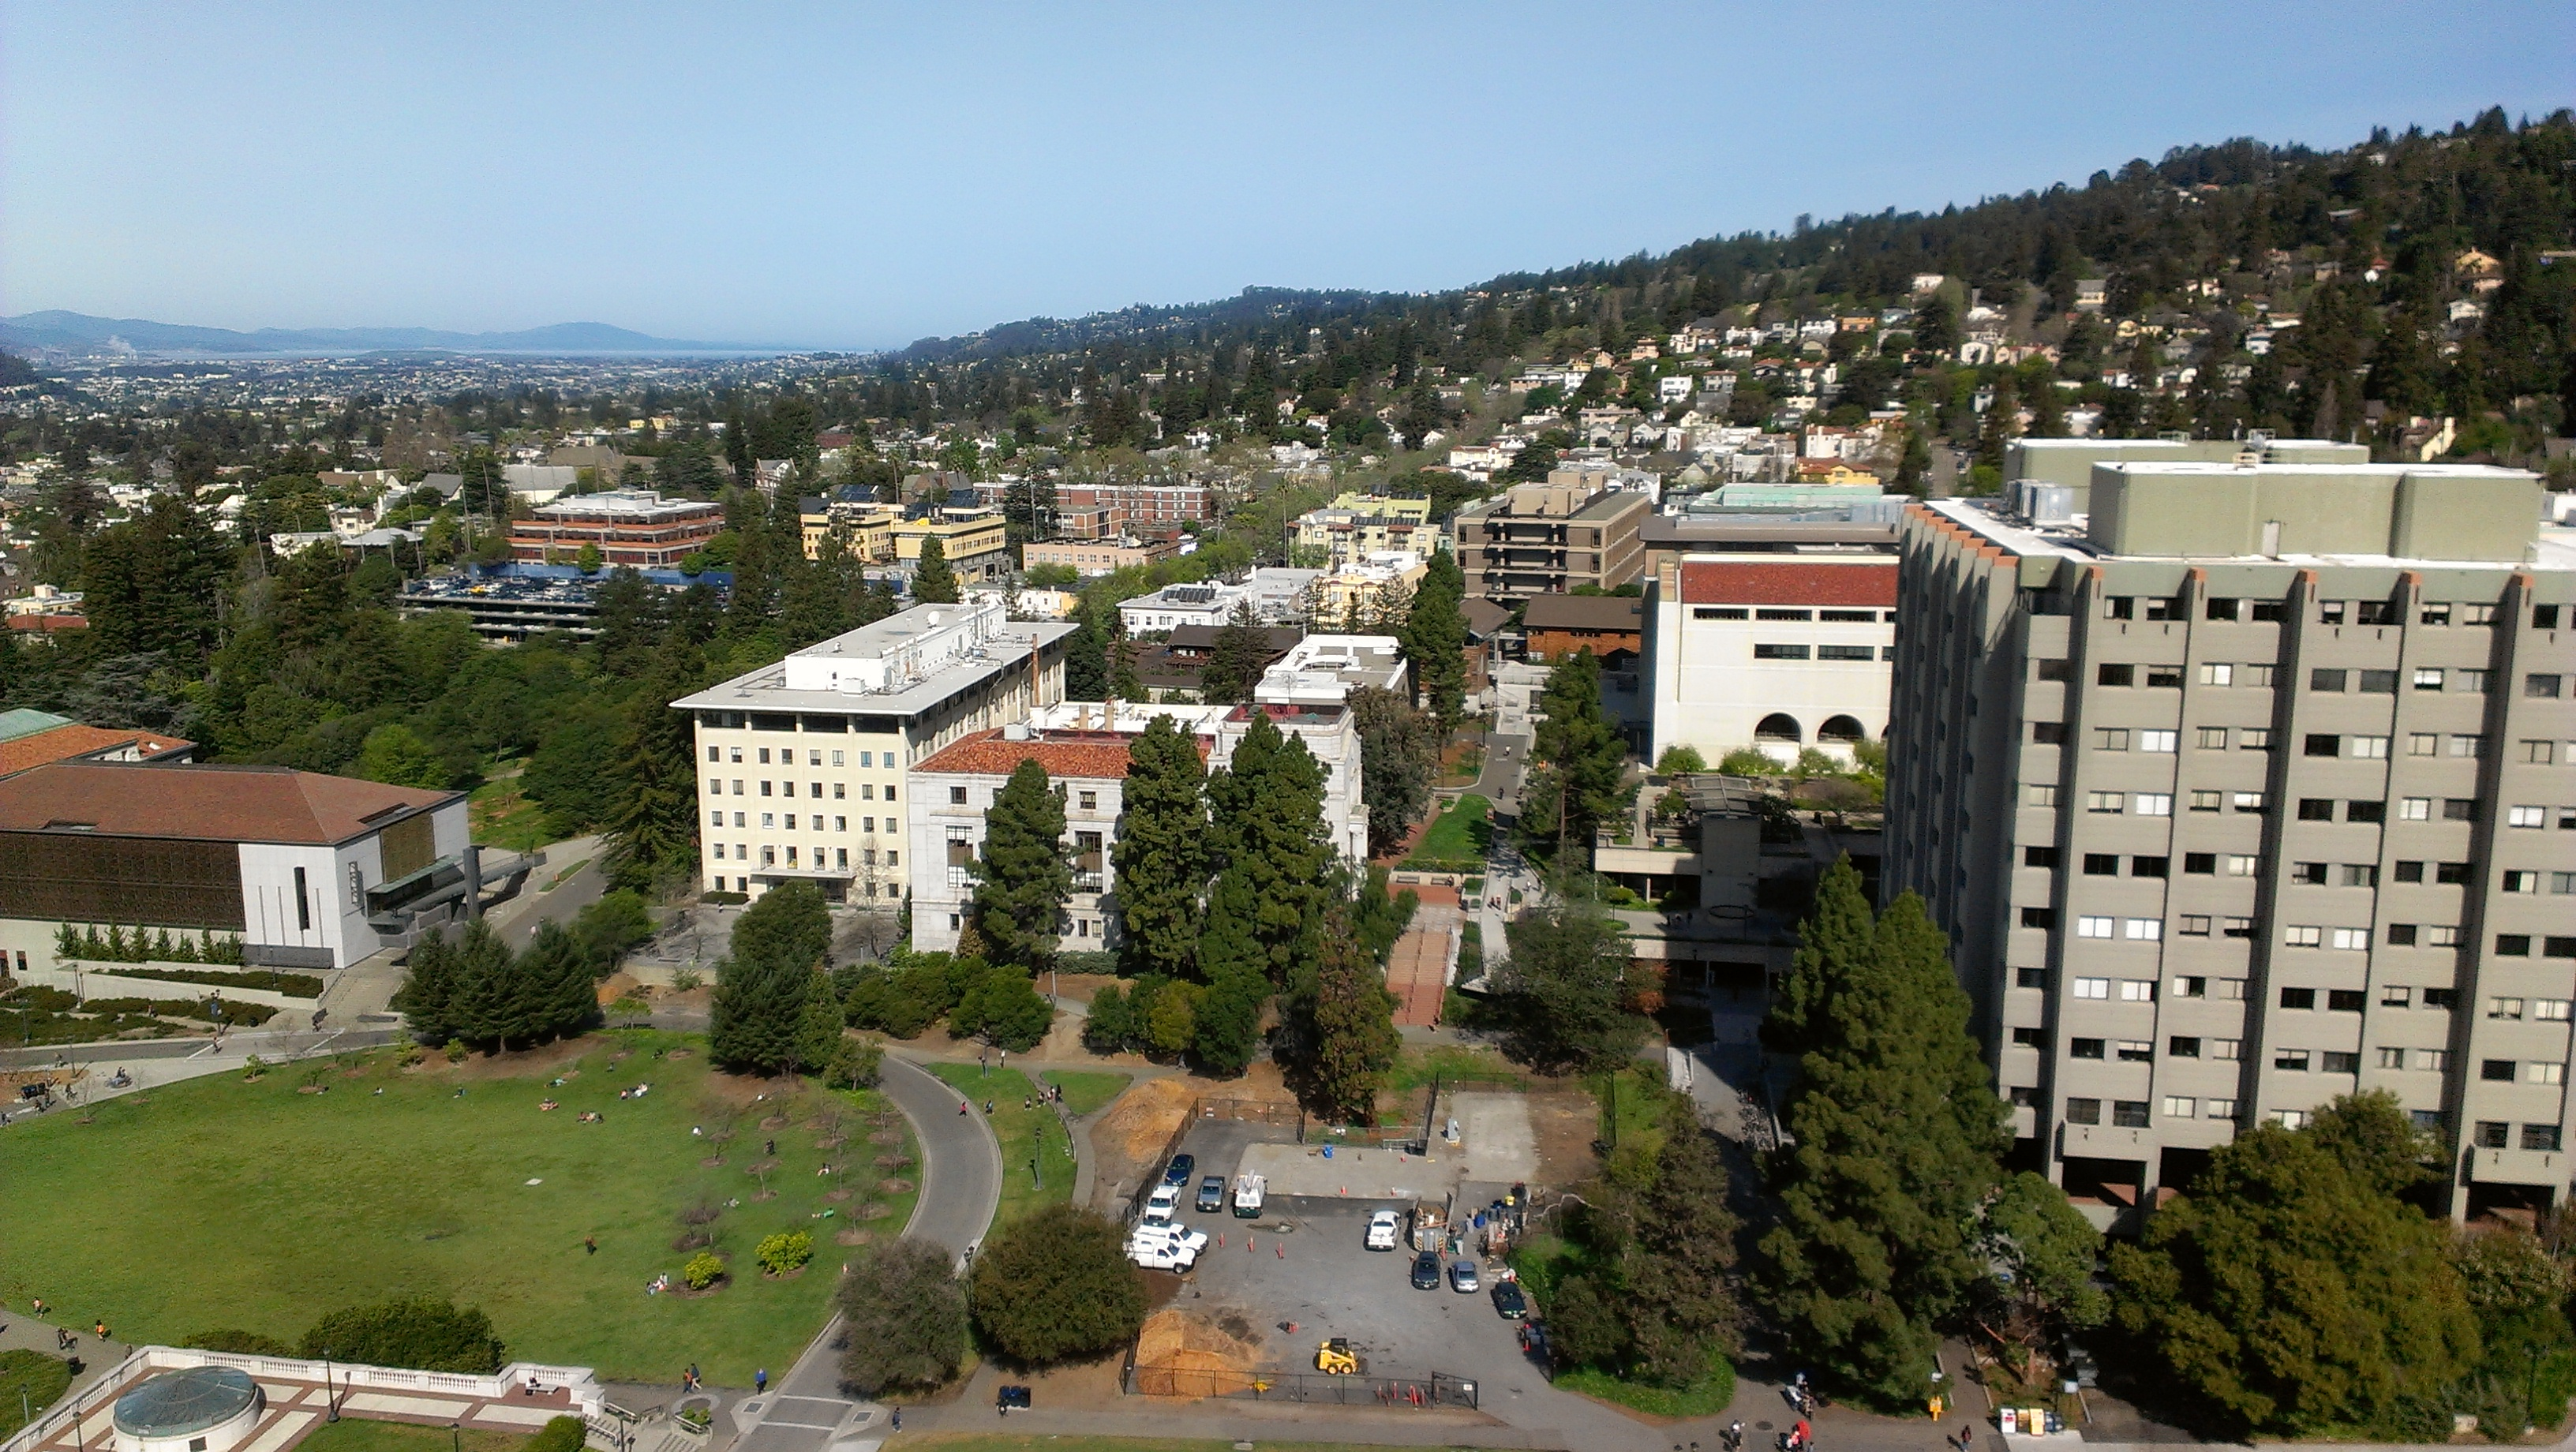 UC Berkeley (Haas) Admissions Essays and Deadlines for 2011-2012